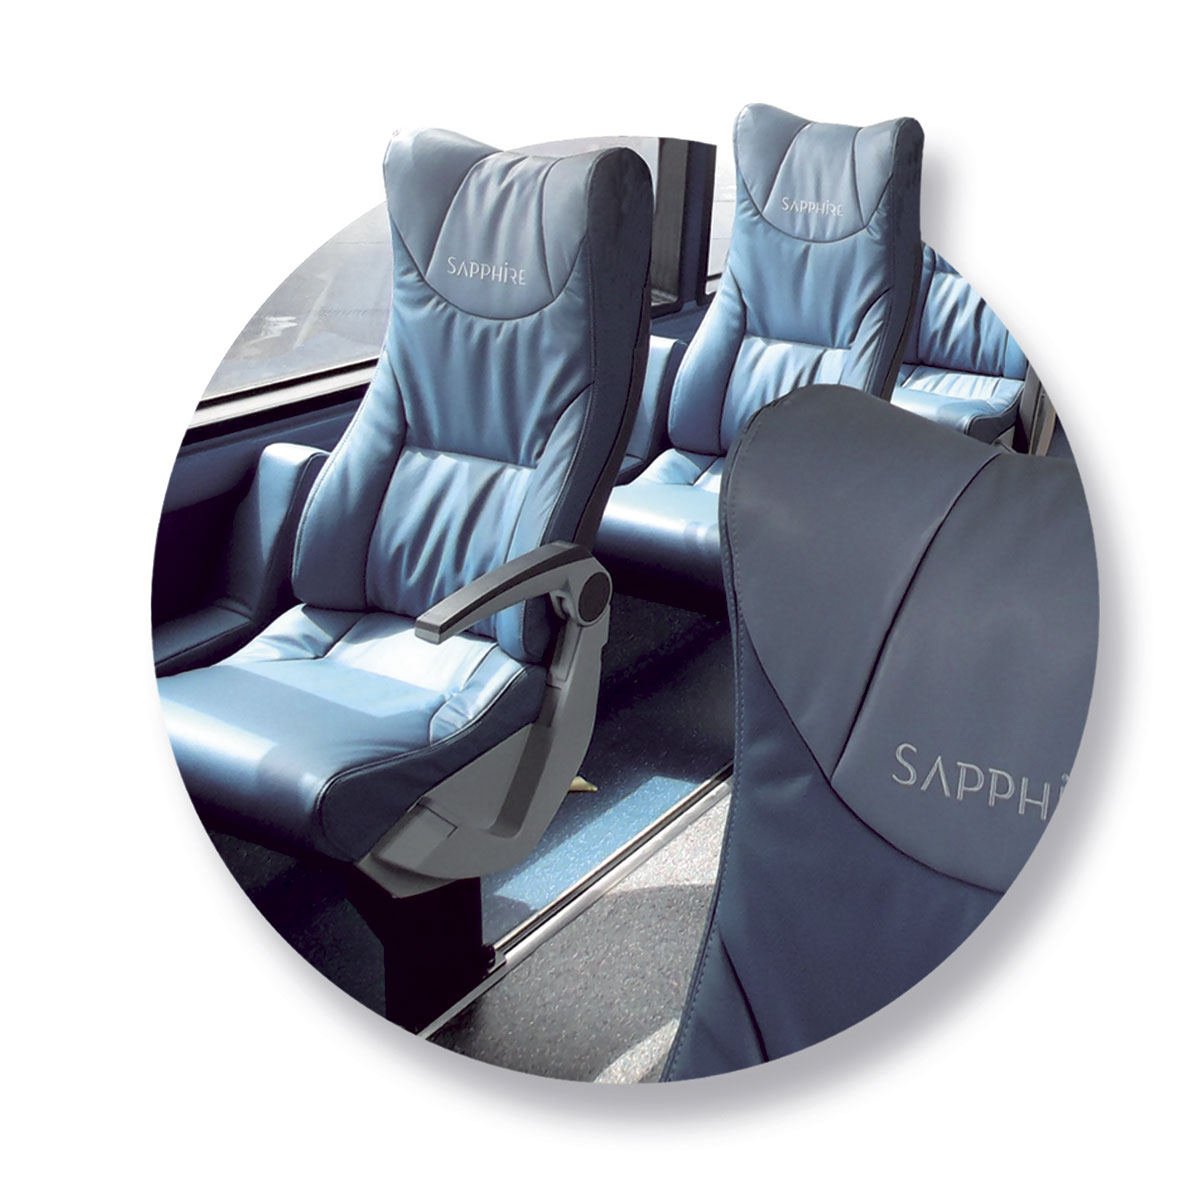 Arriva specified the colour and shape of the seats, the rest of the design was down to Ray and his team.